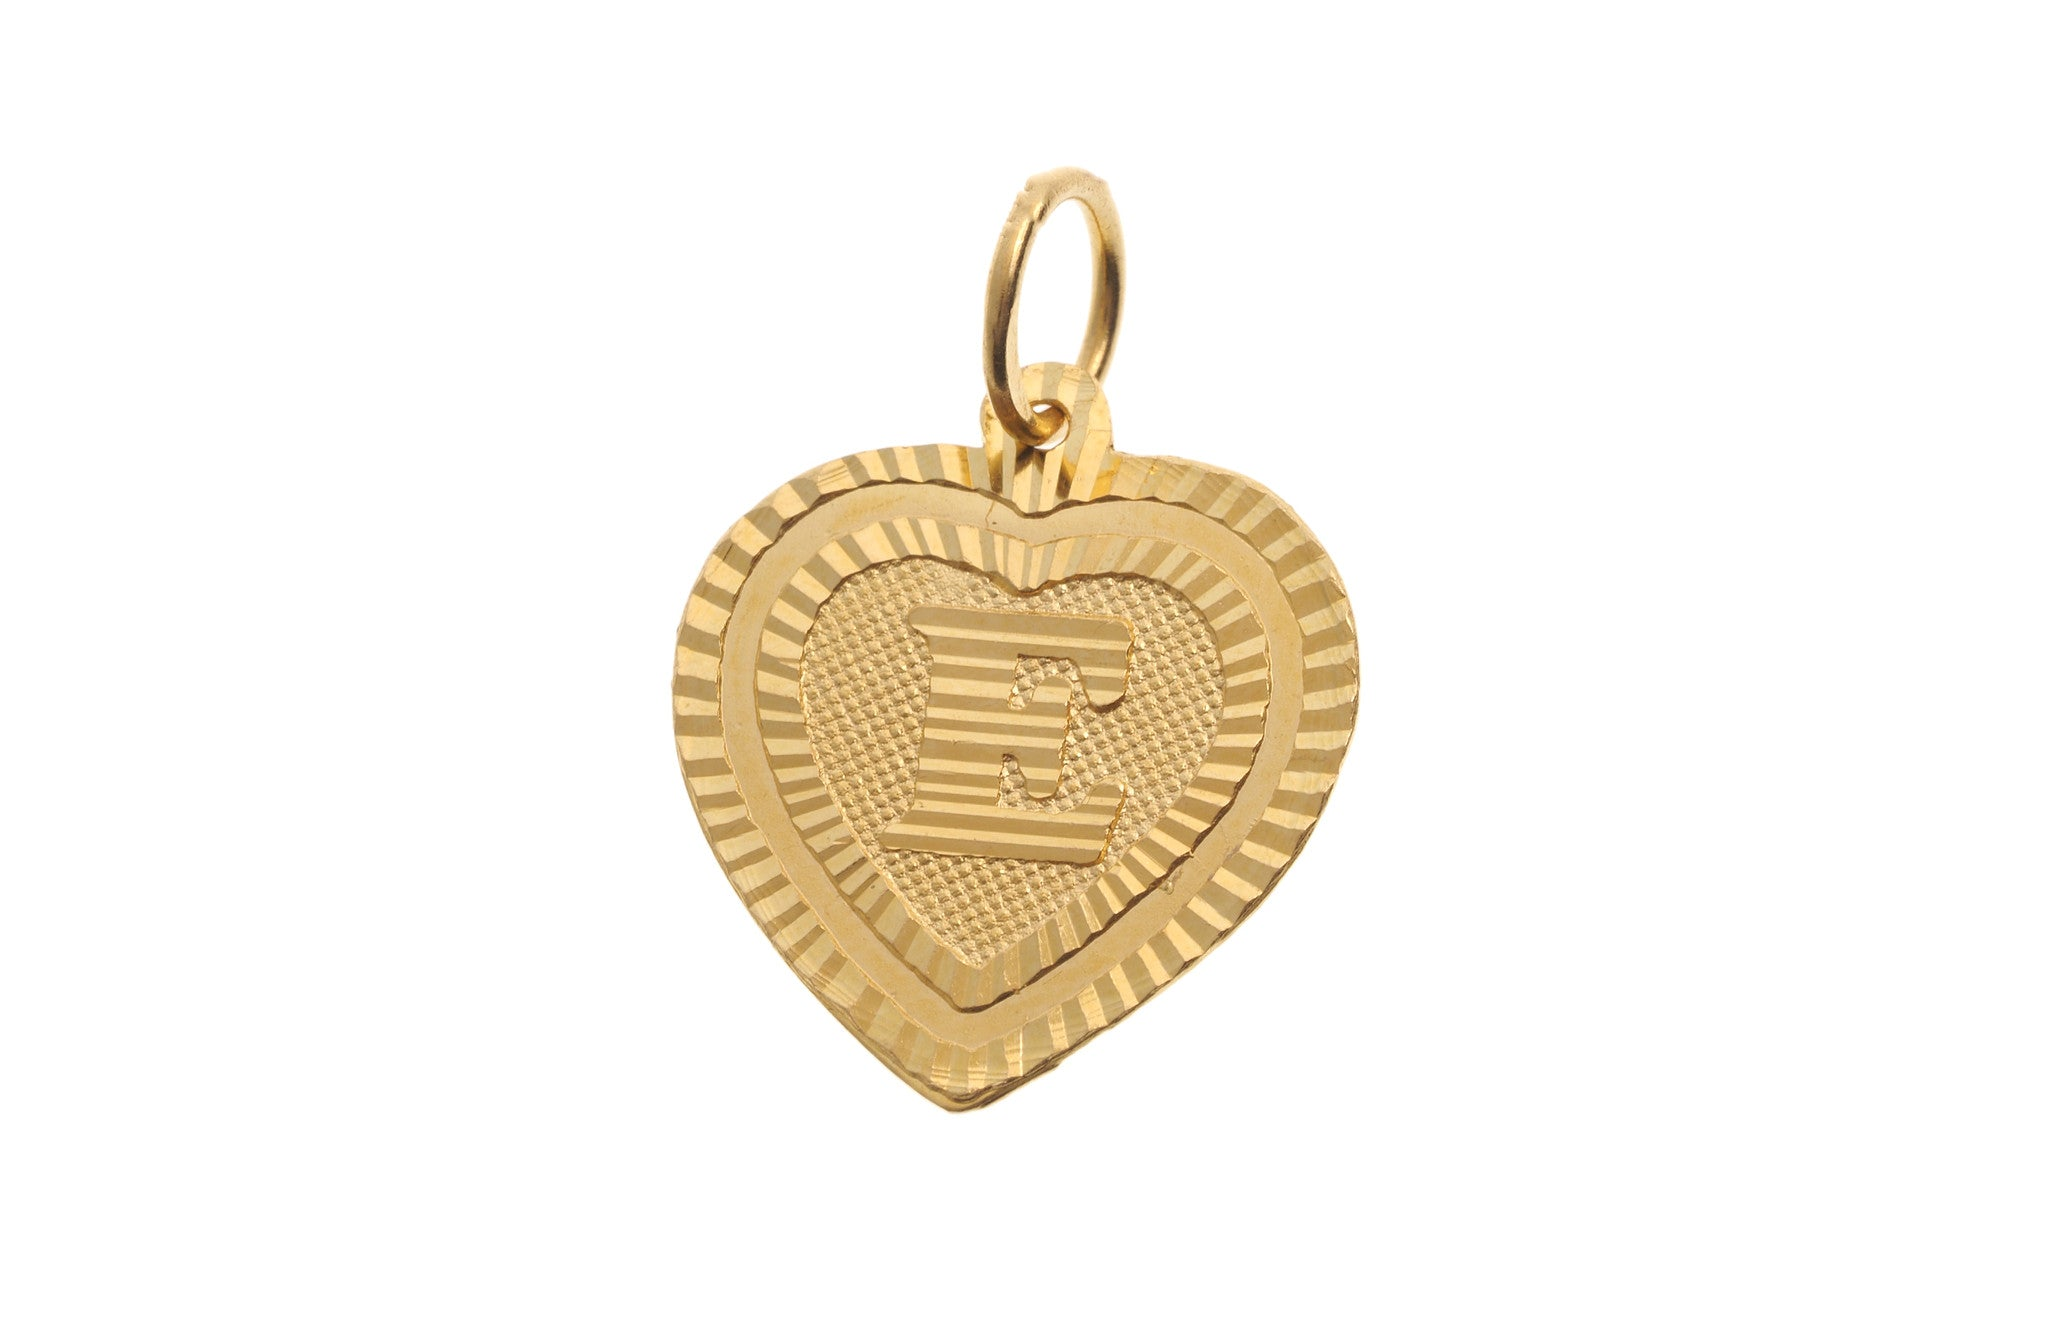 22ct Yellow Gold Heart Shaped 'E' Initial Pendant (0.9g) P-5614